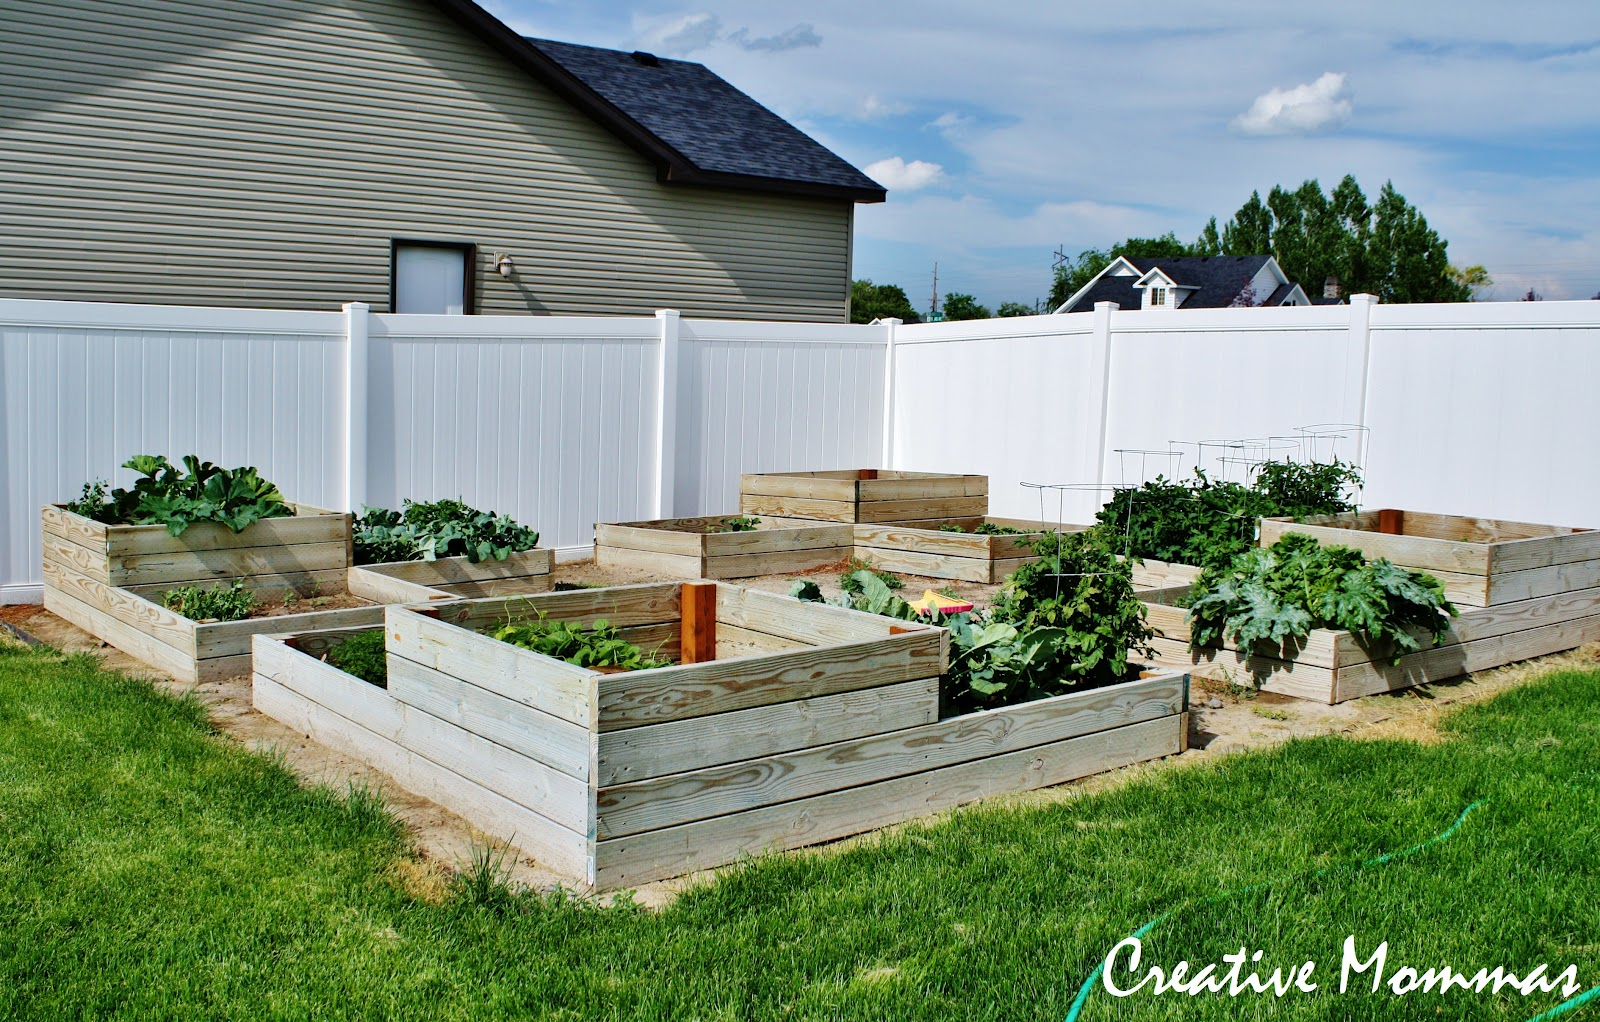 Raised Garden Beds Design vignette design design bucket list 3 design a beautiful raised vignette design design bucket list 3 design a beautiful raised bed vegetable garden Best Garden Boxes Creative Mommas Diy Tiered Raised Garden Beds